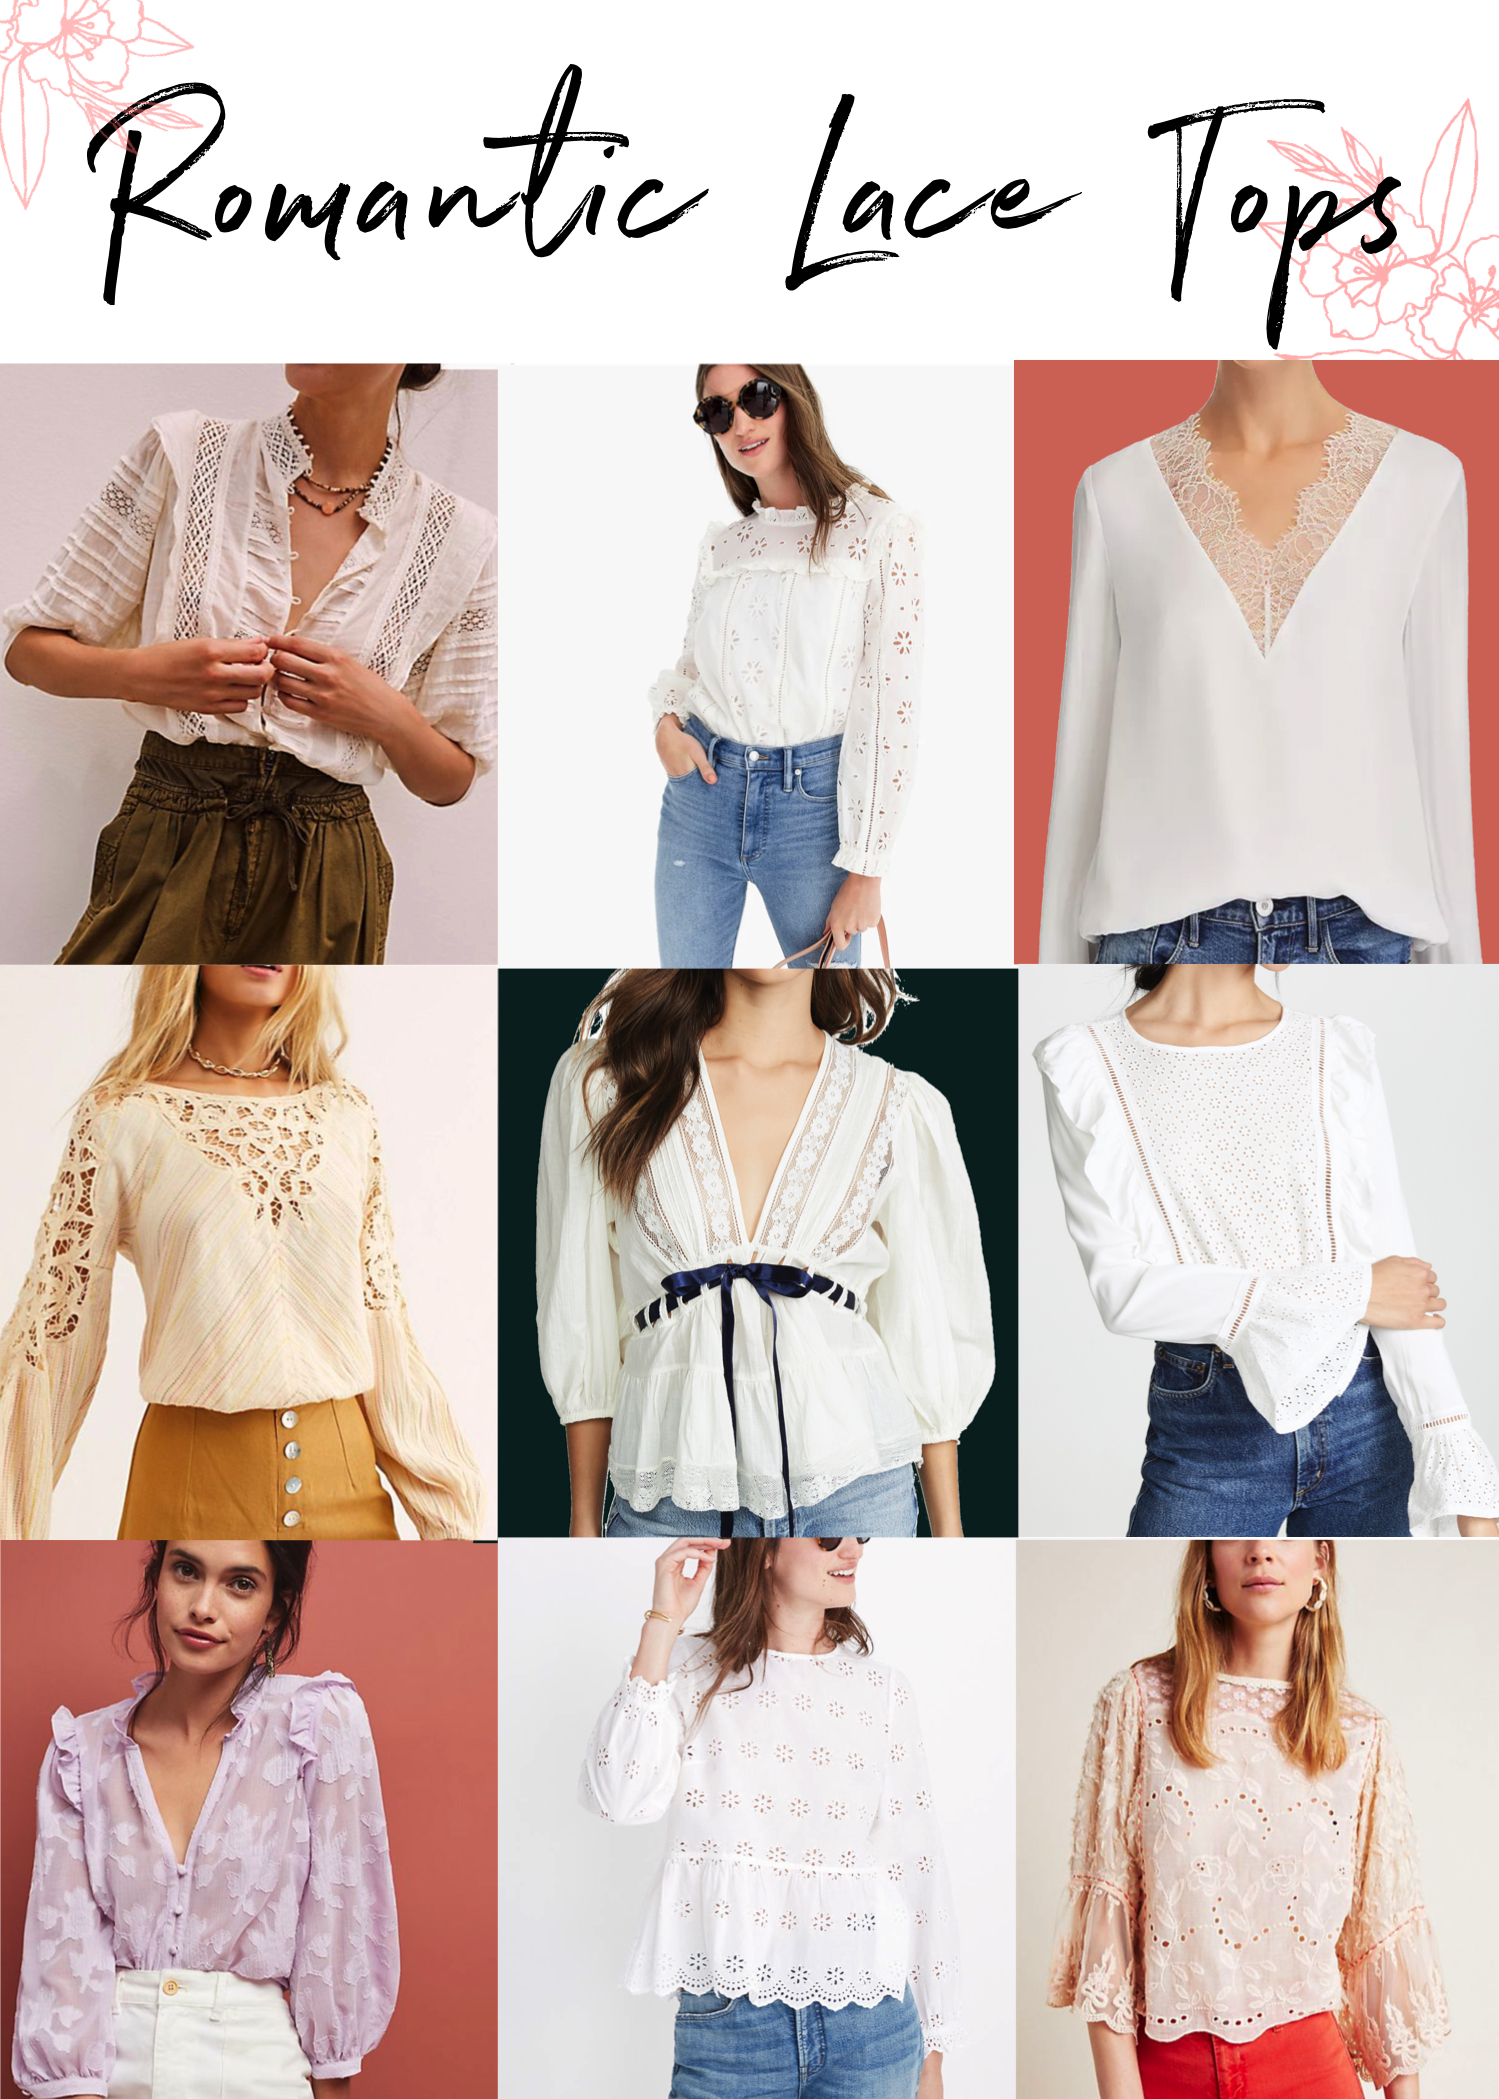 It's the perfect time to inject a li'l romance in your wardrobe. Lacy tops with a boho-chic vibe are calling. Free People, Madewell & Anthro are answering.